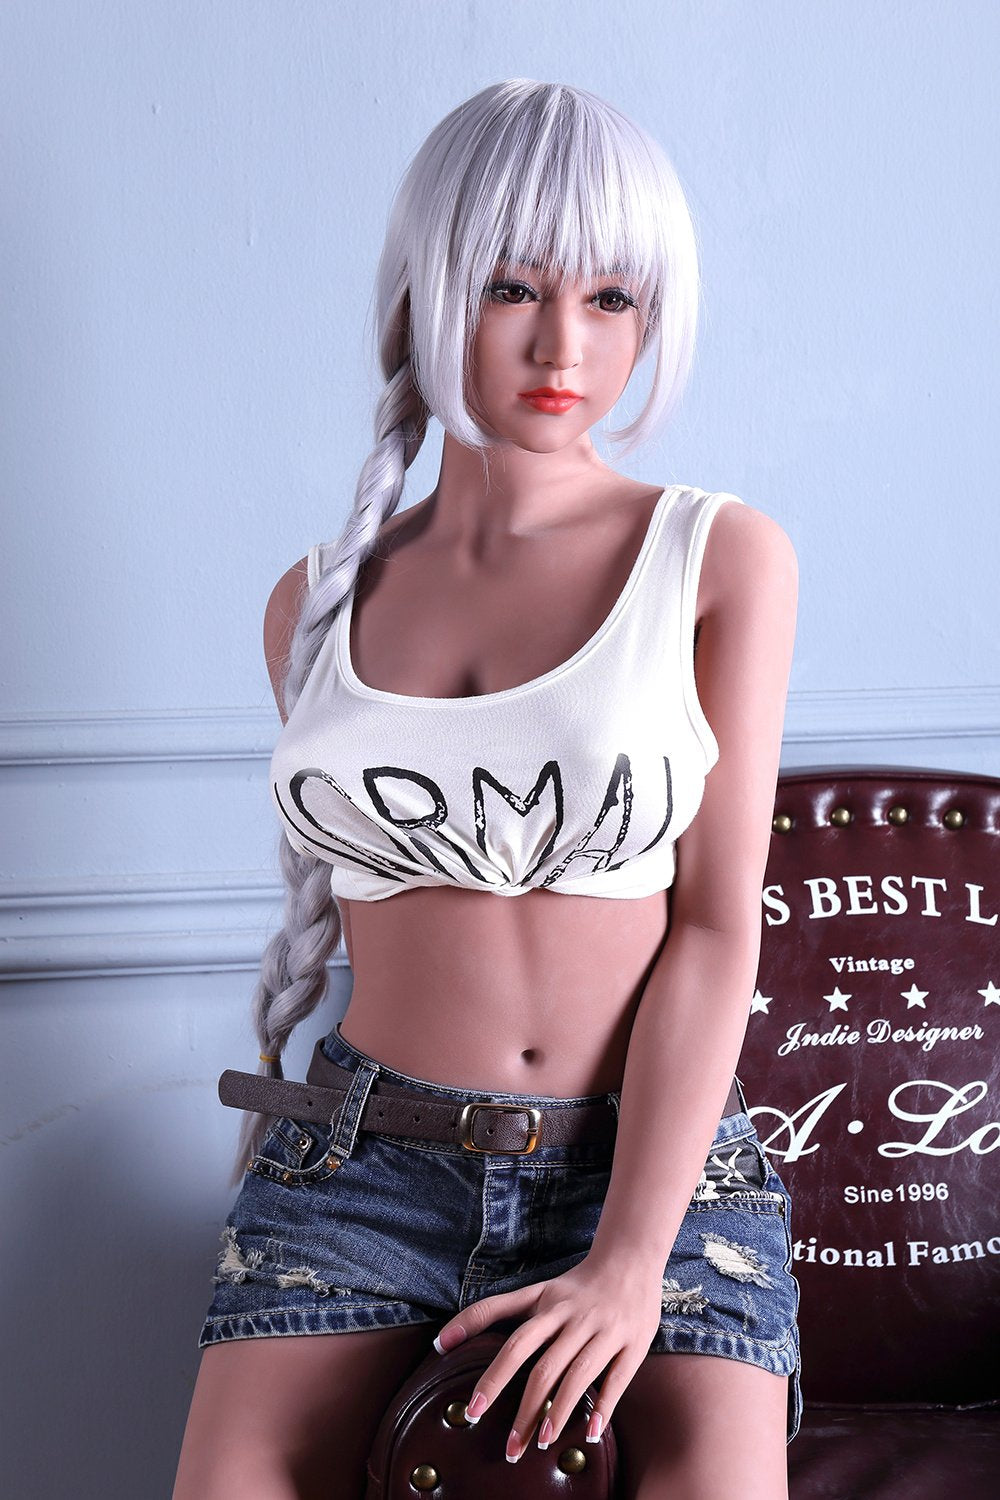 ronnie 158cm blonde japanese medium tits skinny tan skin tpe wm asian sex doll